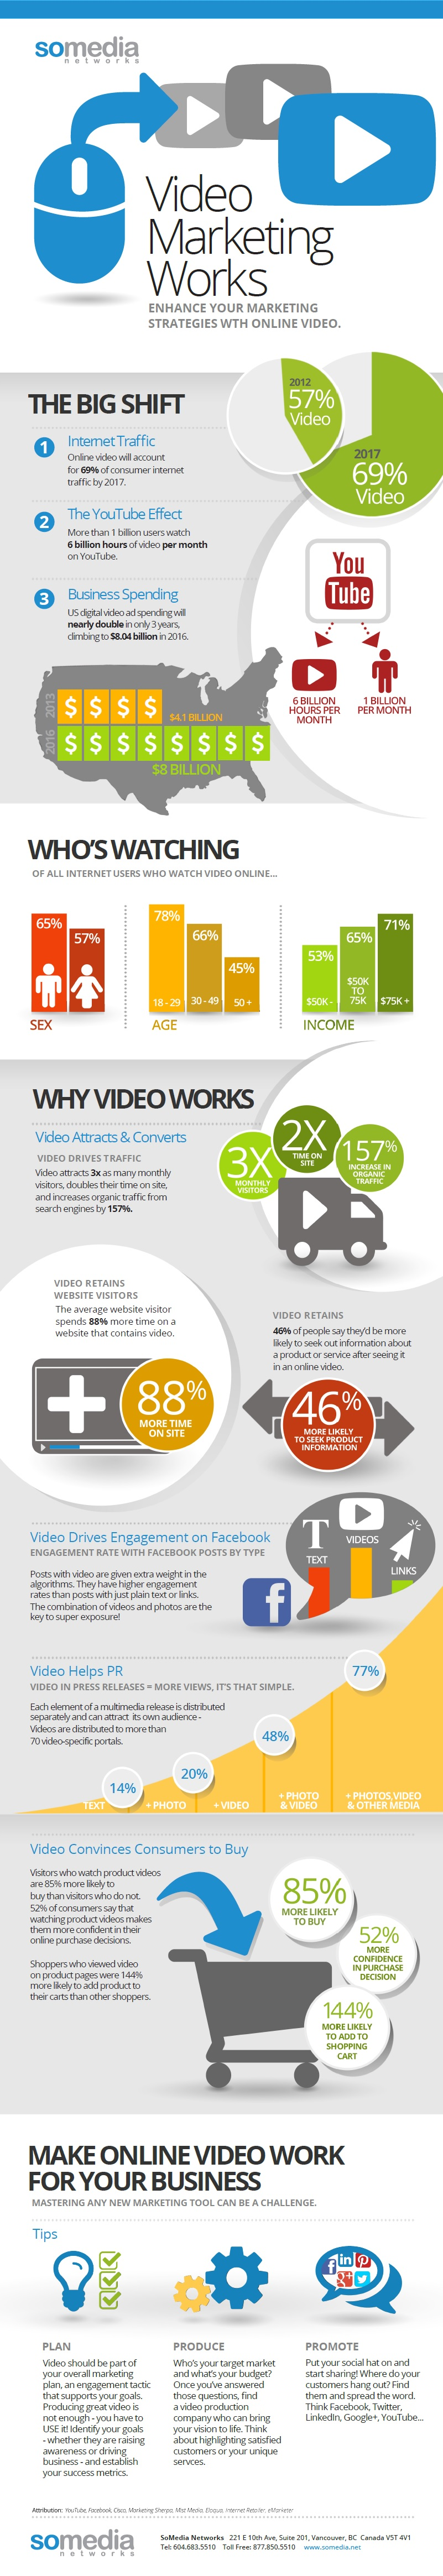 Research and info-graphic provided by SoMedia Networks